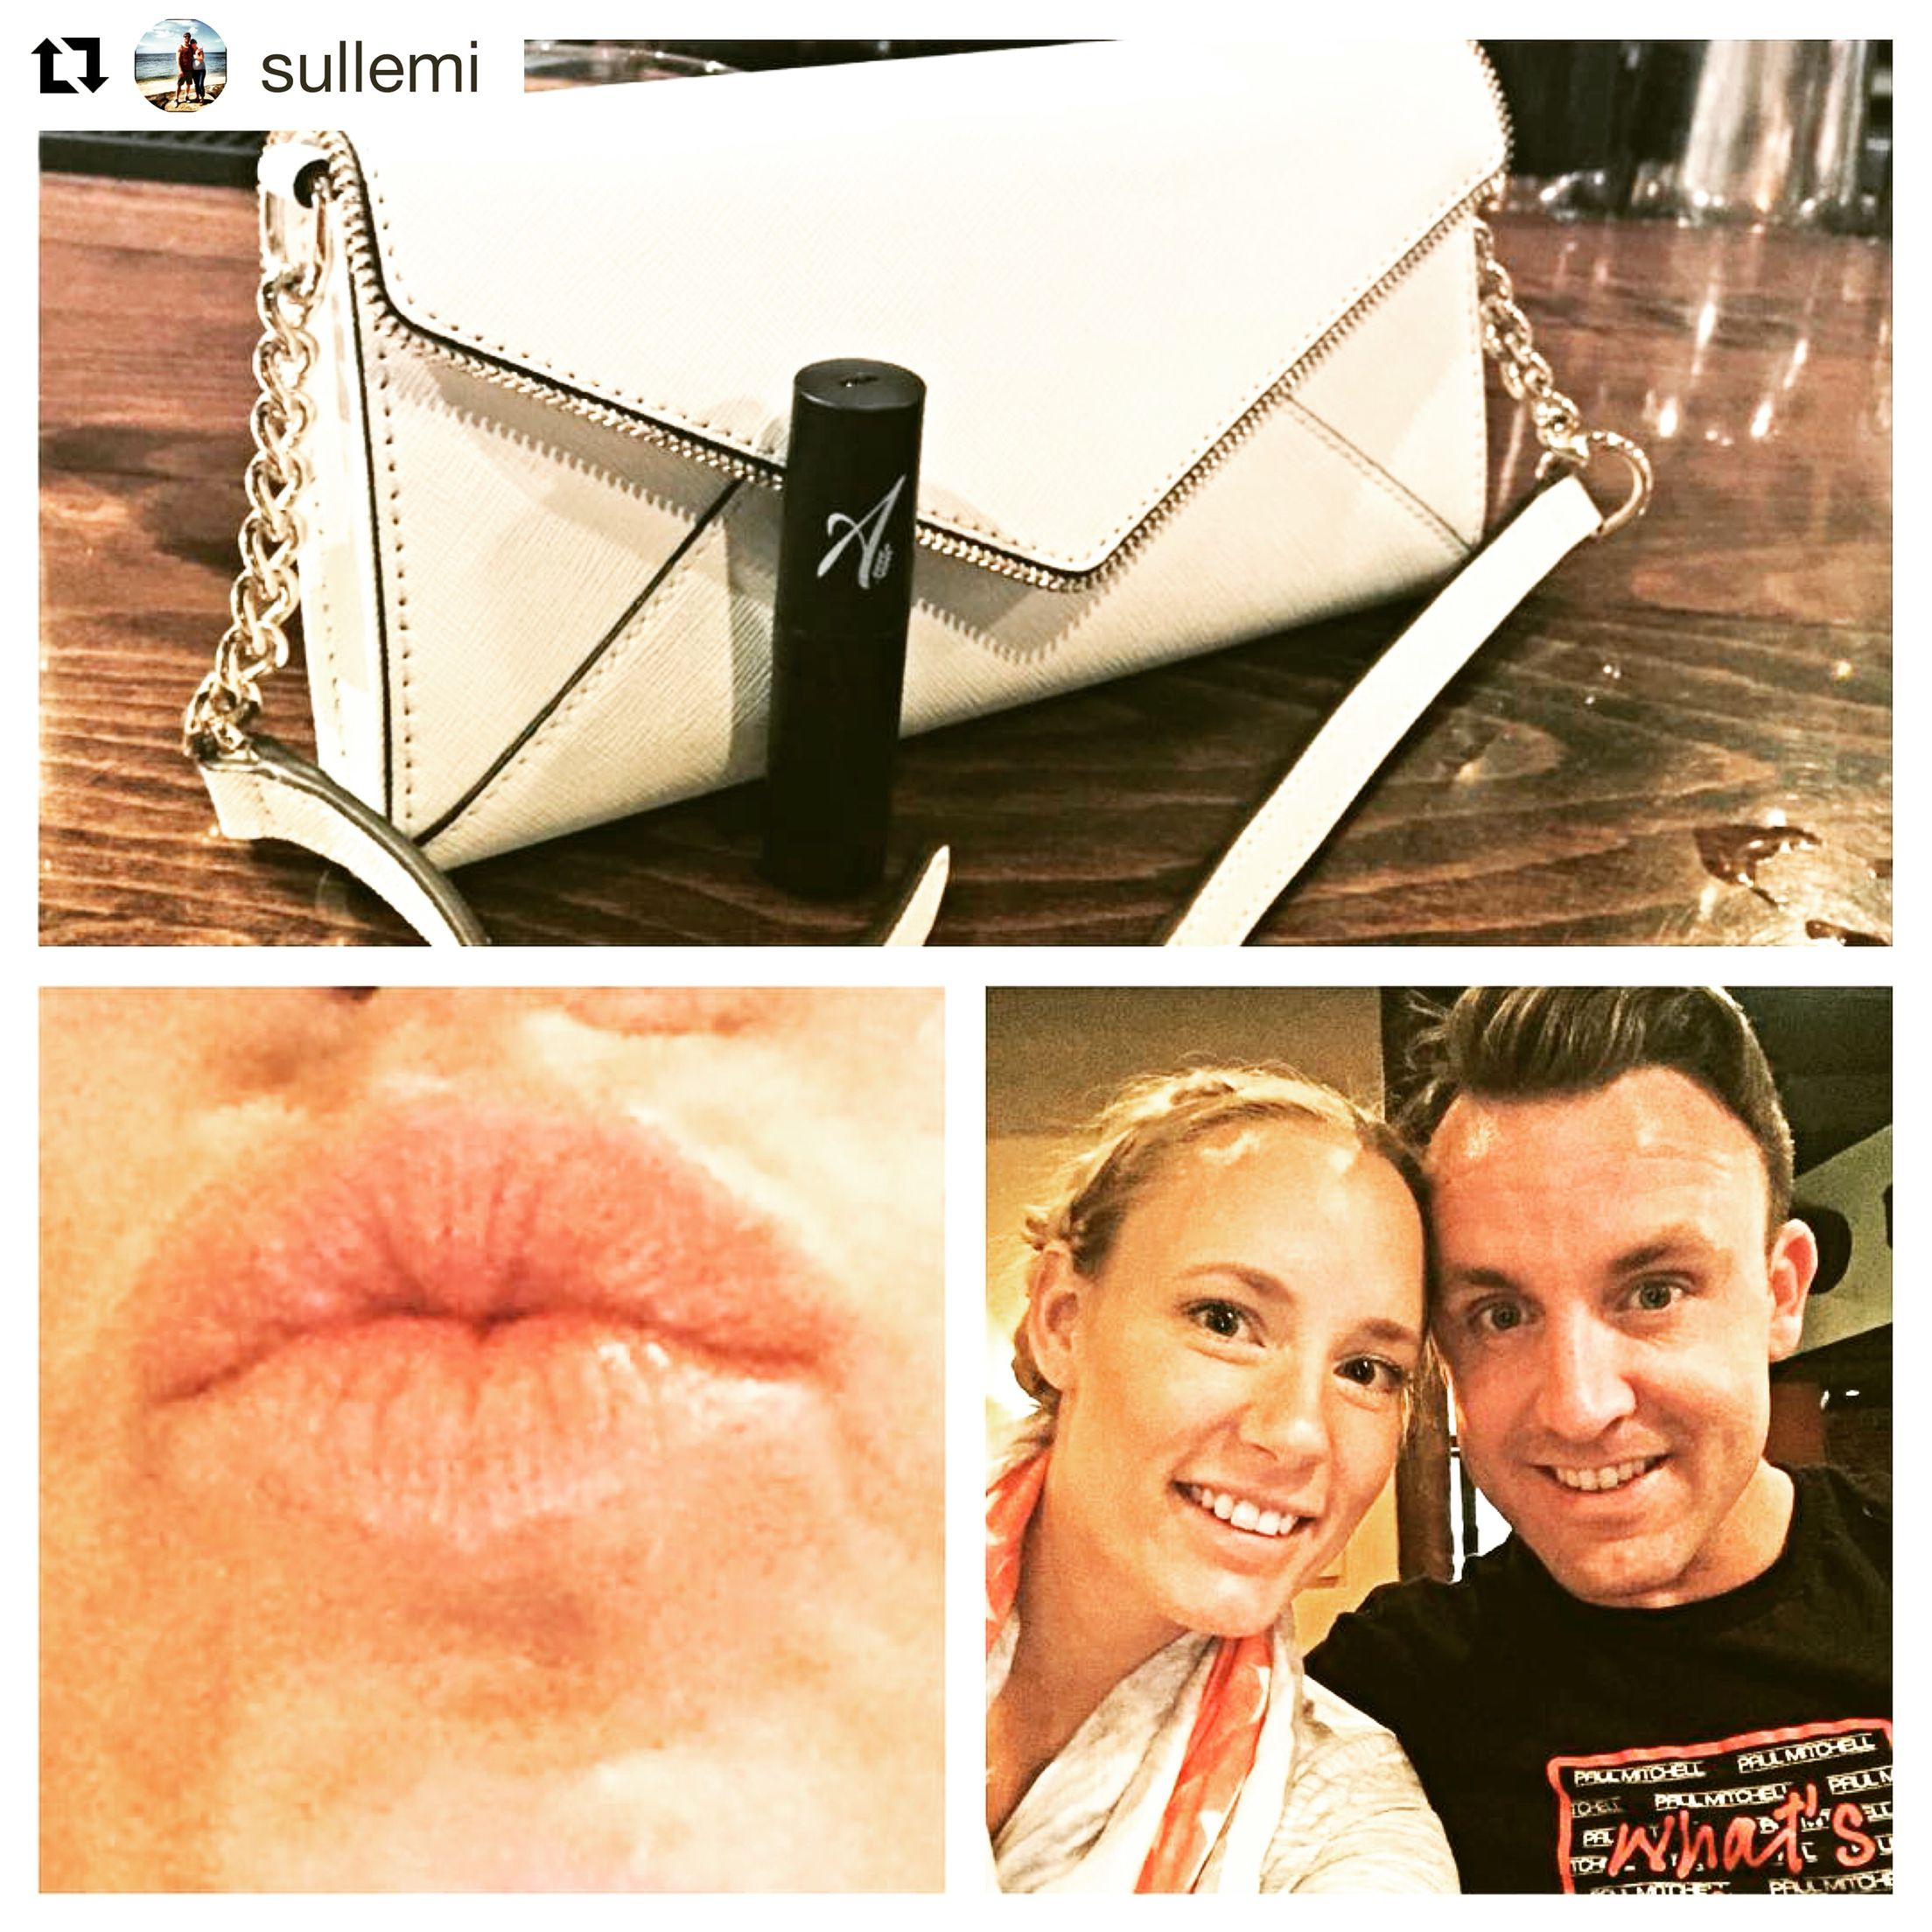 Thanks for the shout out, @sullemi! So happy you're loving our high-performance organic lipstick in breathless!  Get the look? Shop www.aislingorganics.com!  #Repost @sullemi with @repostapp ・・・ Loving my girls line Aisling Organics and the beautiful lipstick she sent me. Prepped and ready for date night @kerry_sully.